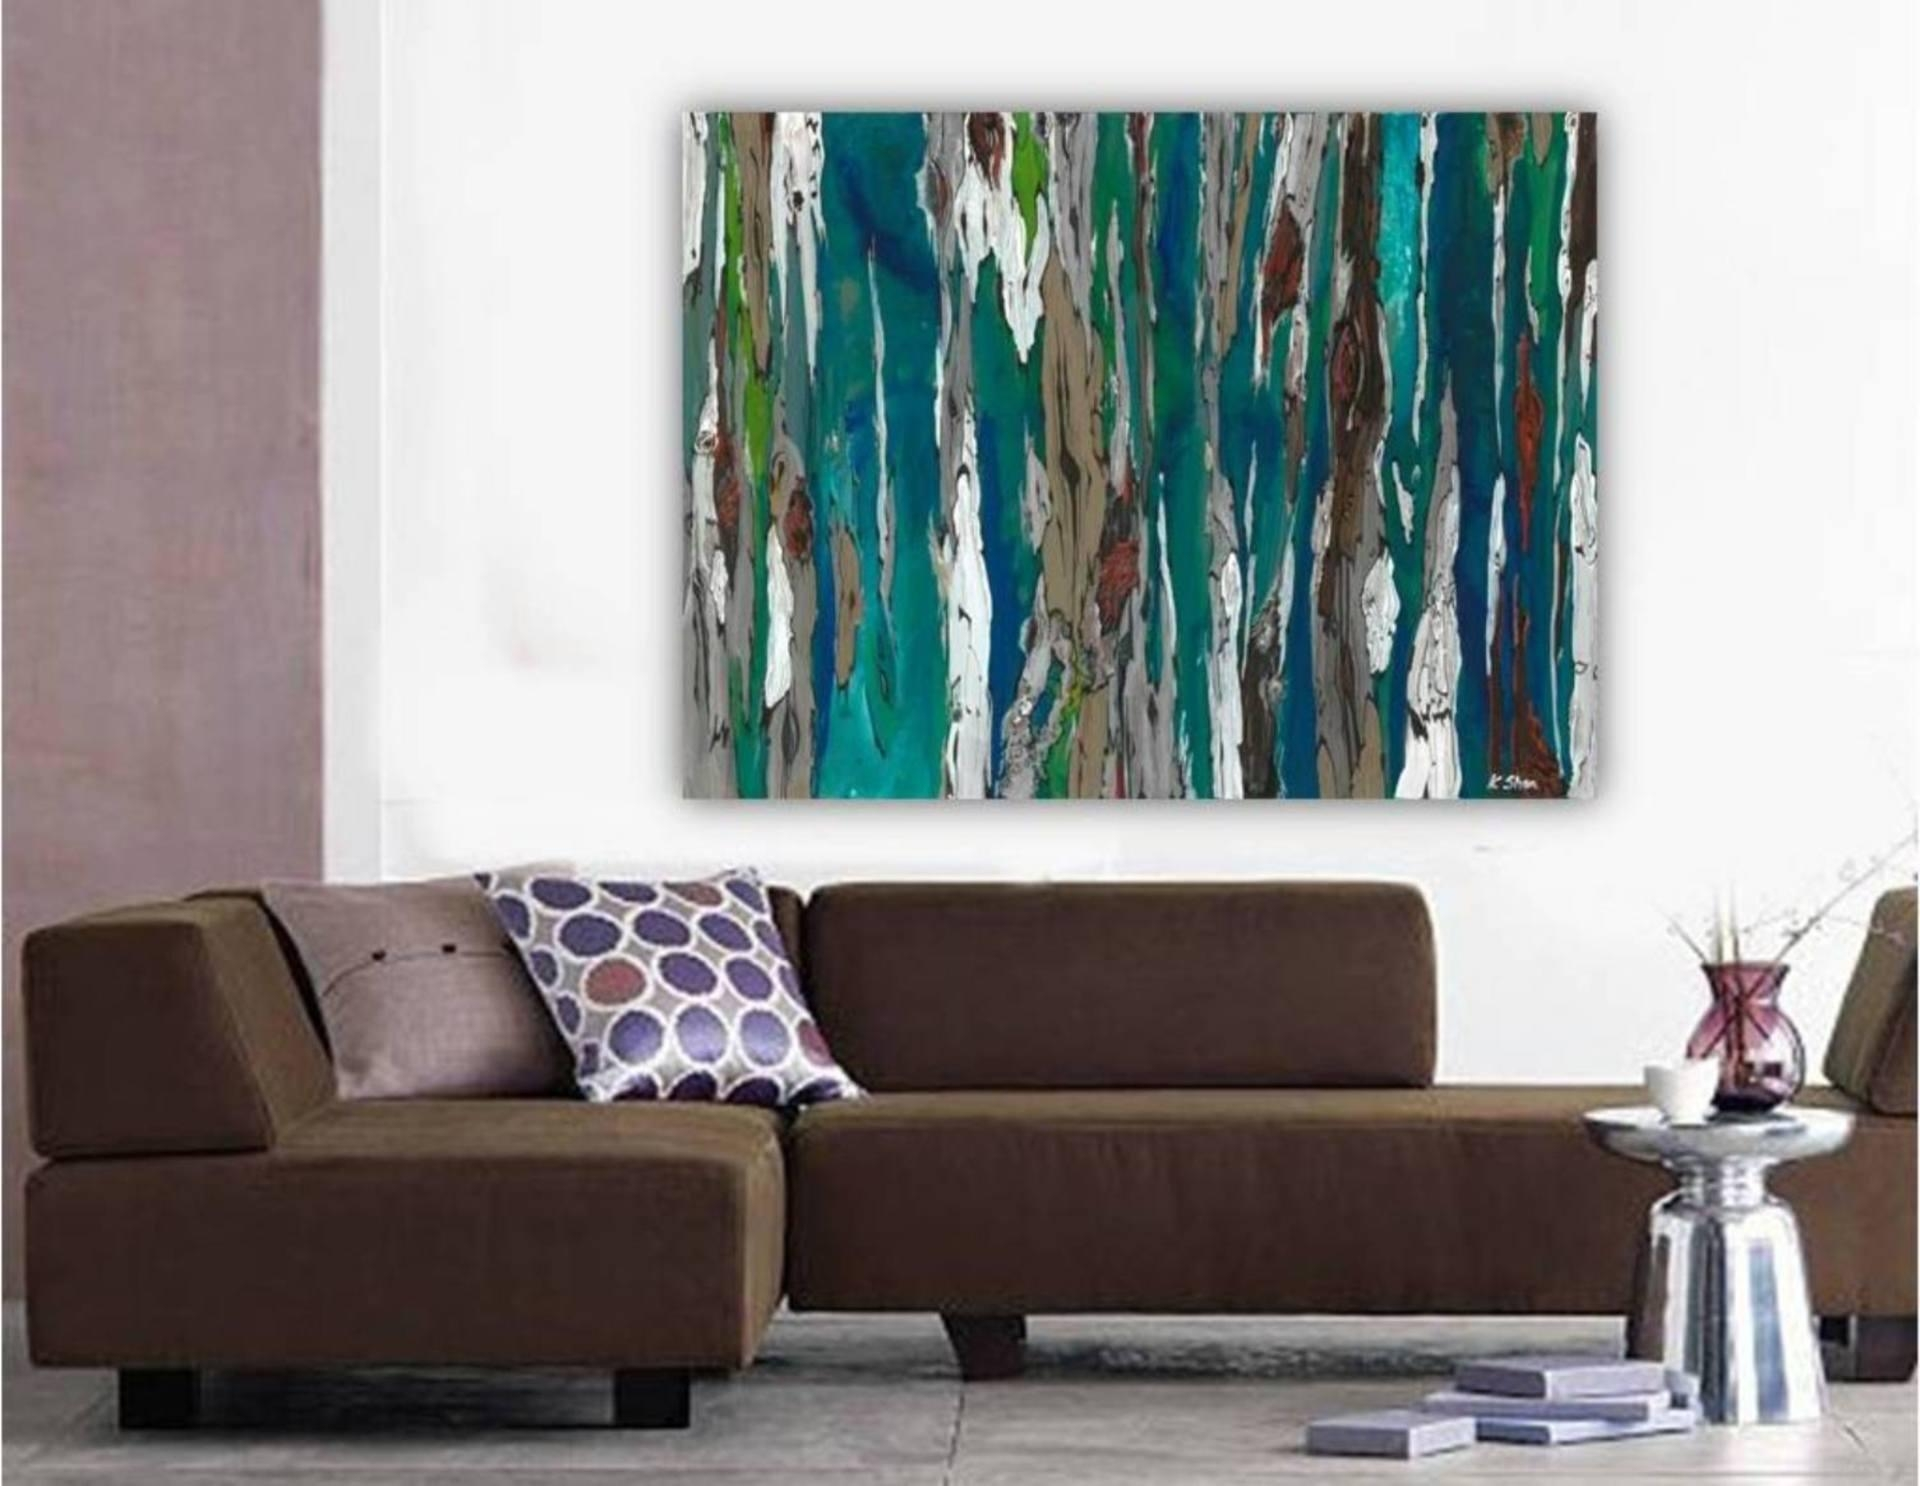 Saatchi Art: Large Contemporary Original Abstract Tree Landscape Pertaining To Blue And Brown Wall Art (Image 14 of 20)